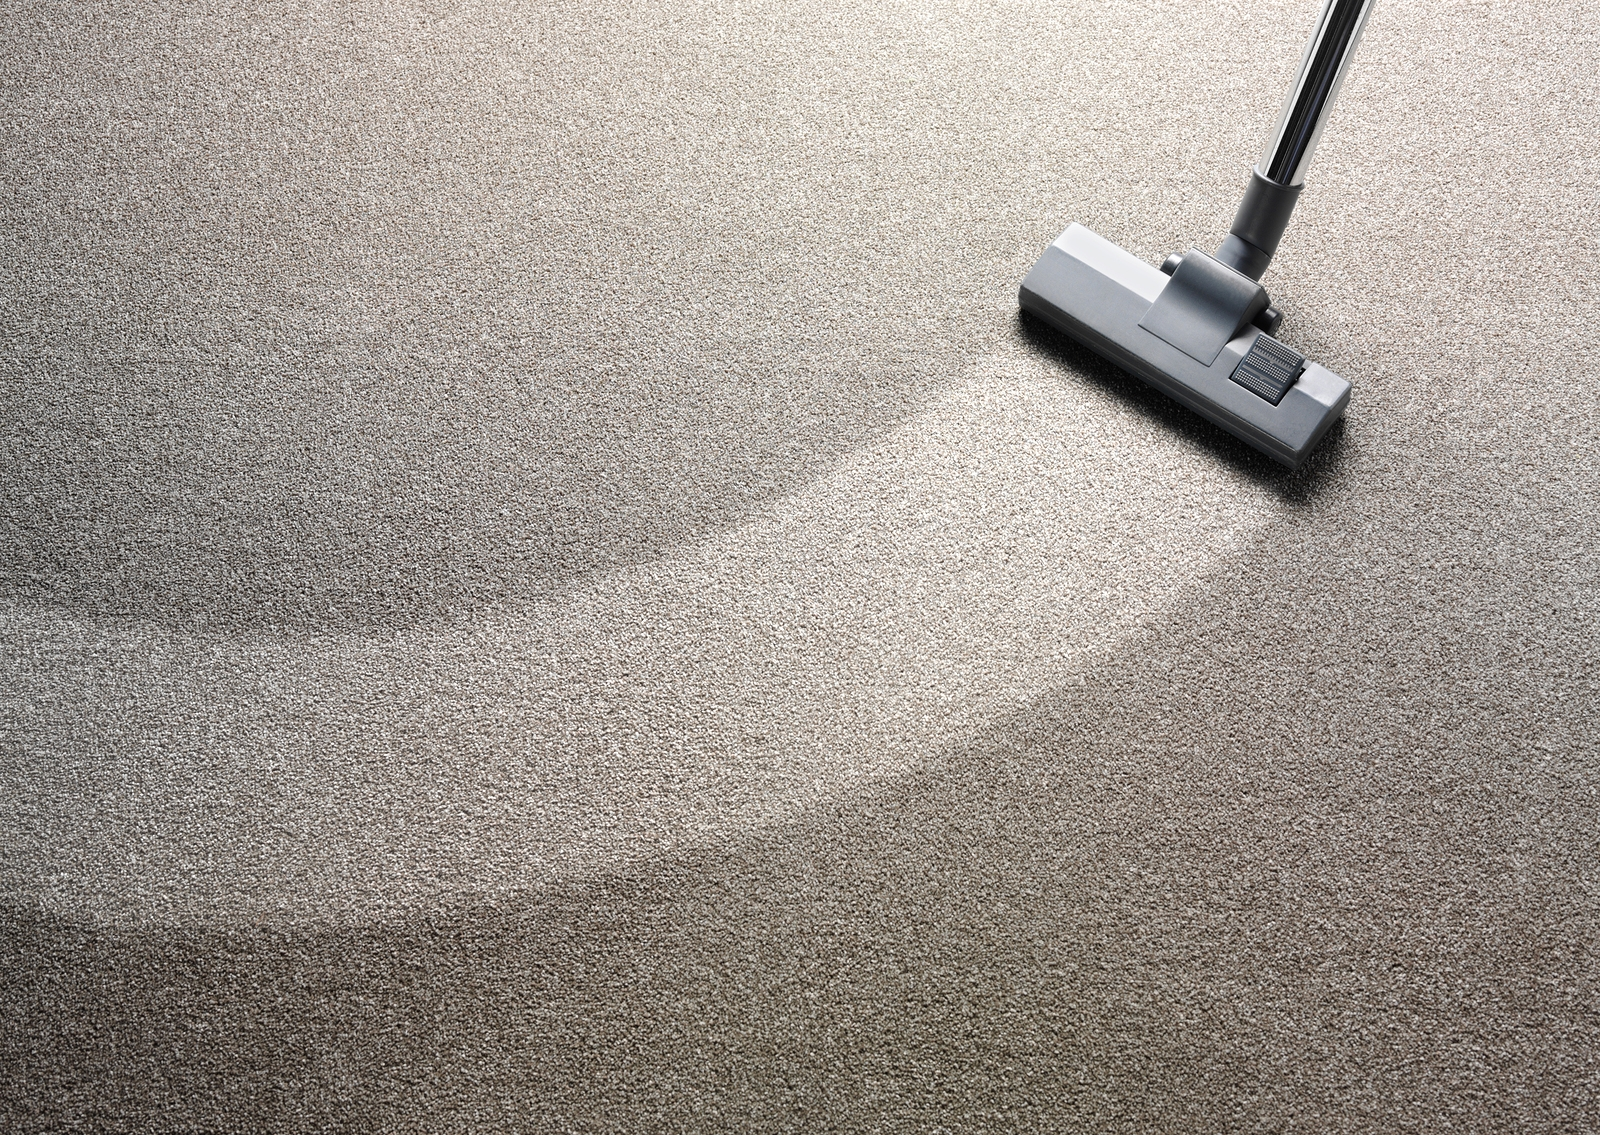 Local Carpet Cleaners Toms River